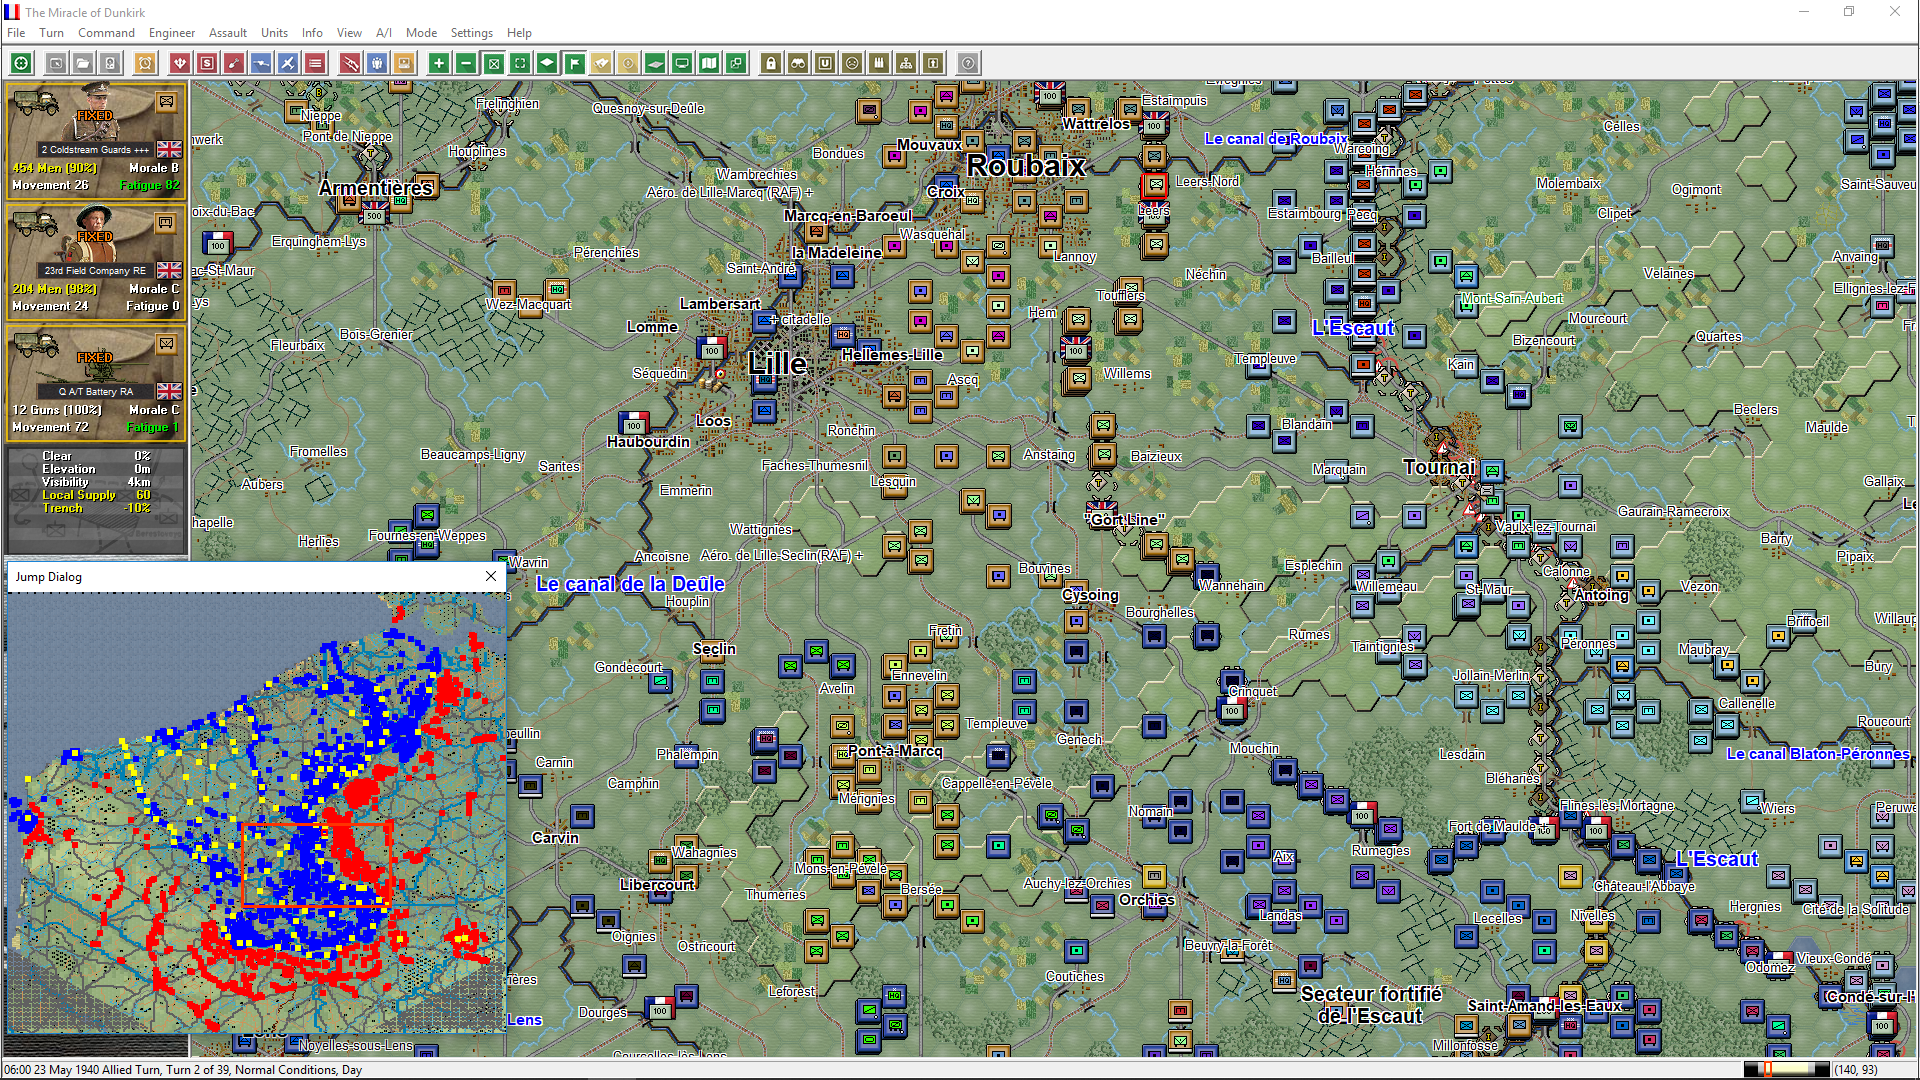 IMAGE(http://www.johntillersoftware.com/PanzerCampaigns/France40/f40_ss4.png)